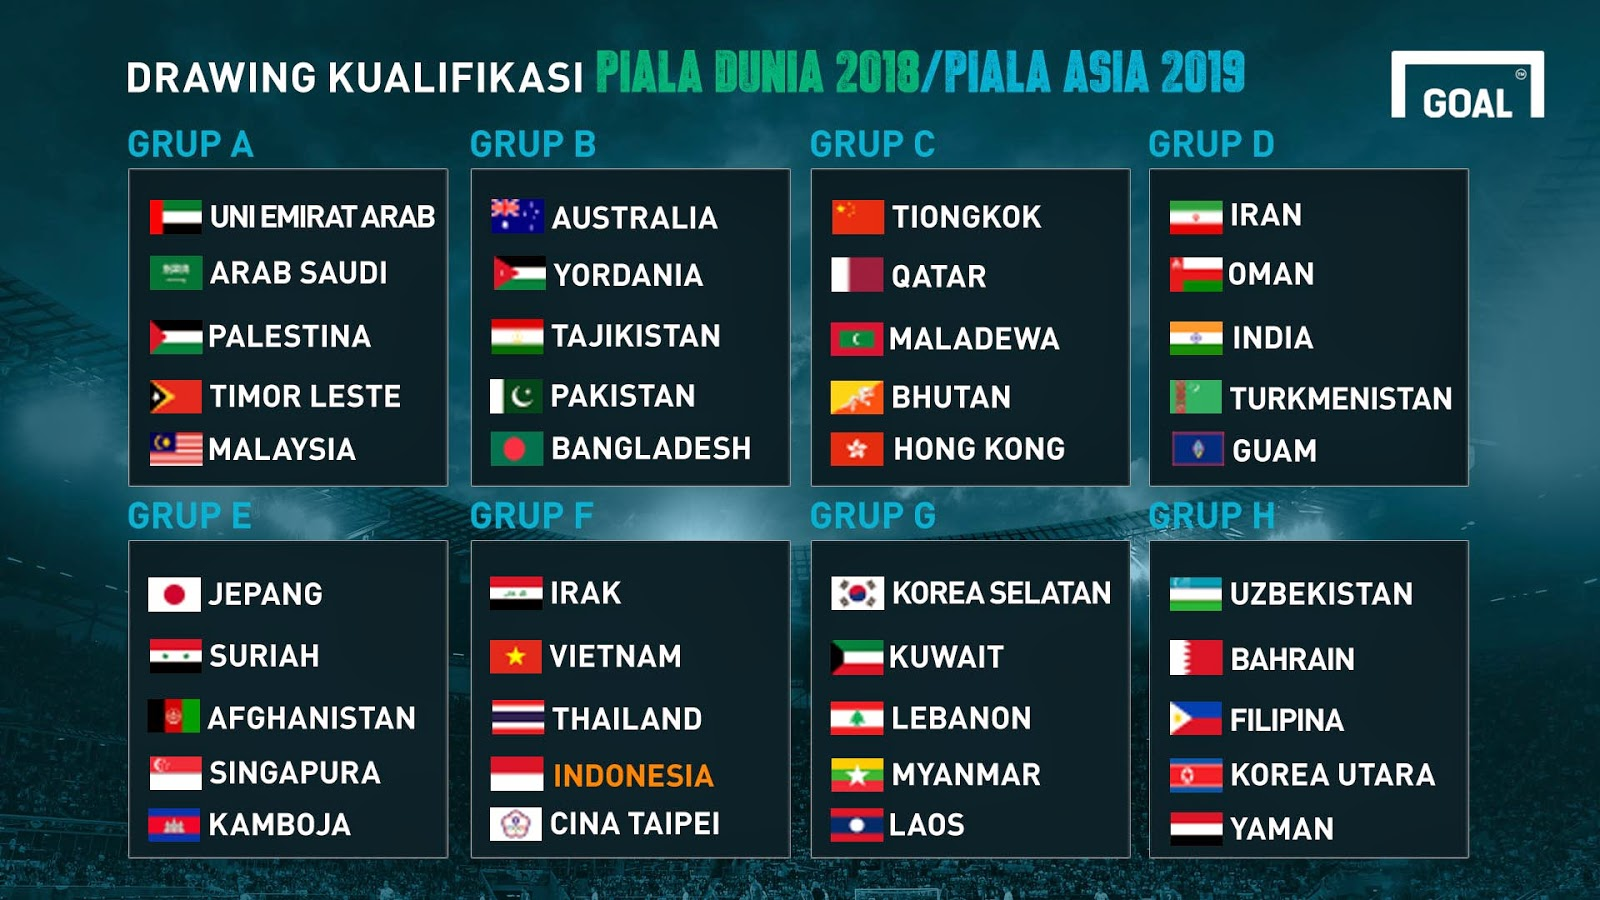 14 FIFA WORLD CUP 2018 KUALIFIKASI